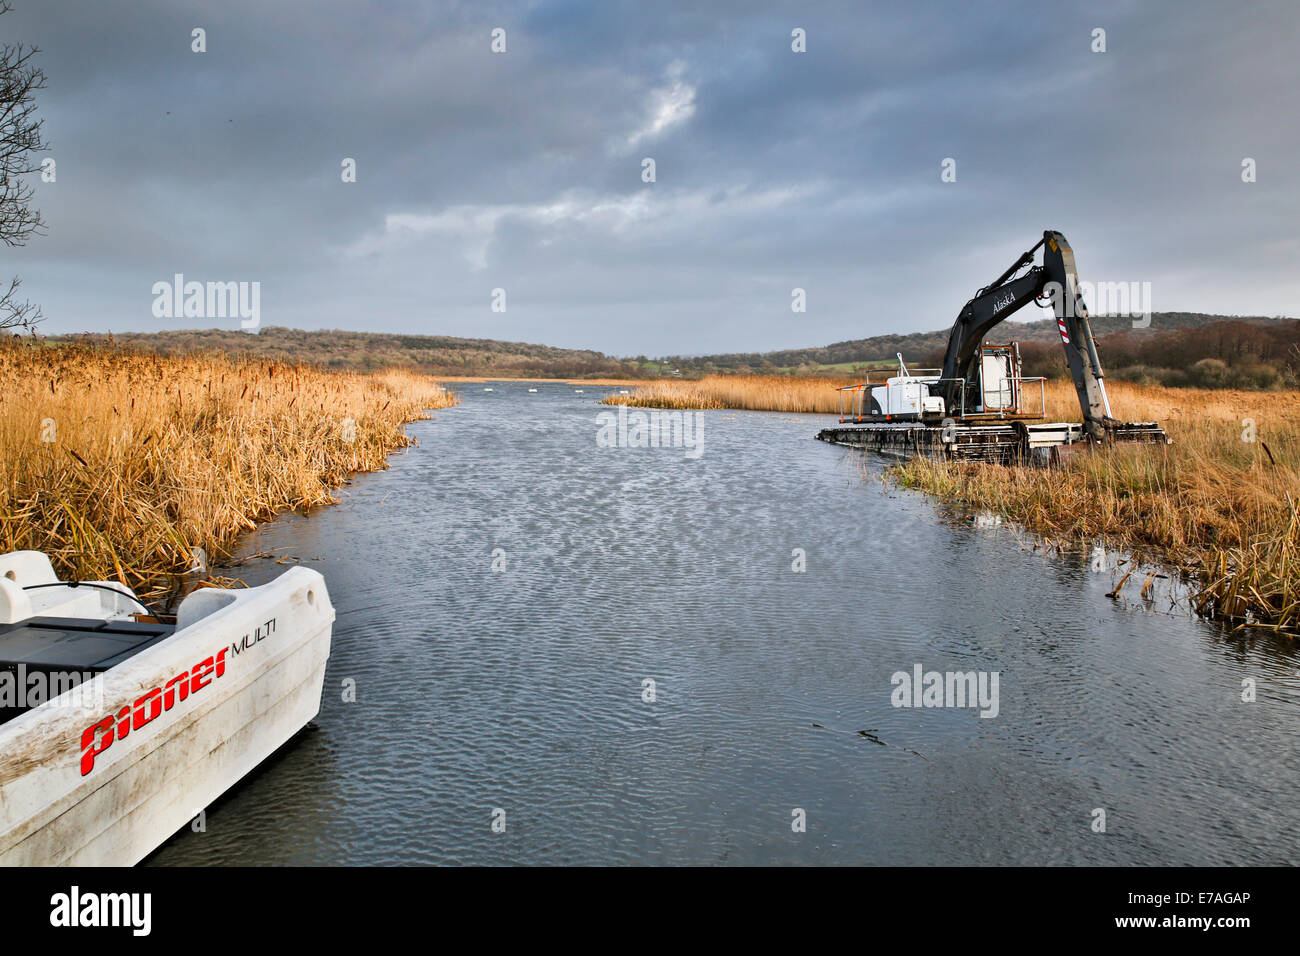 Leighton Moss; Machinery; Lancashire; UK - Stock Image